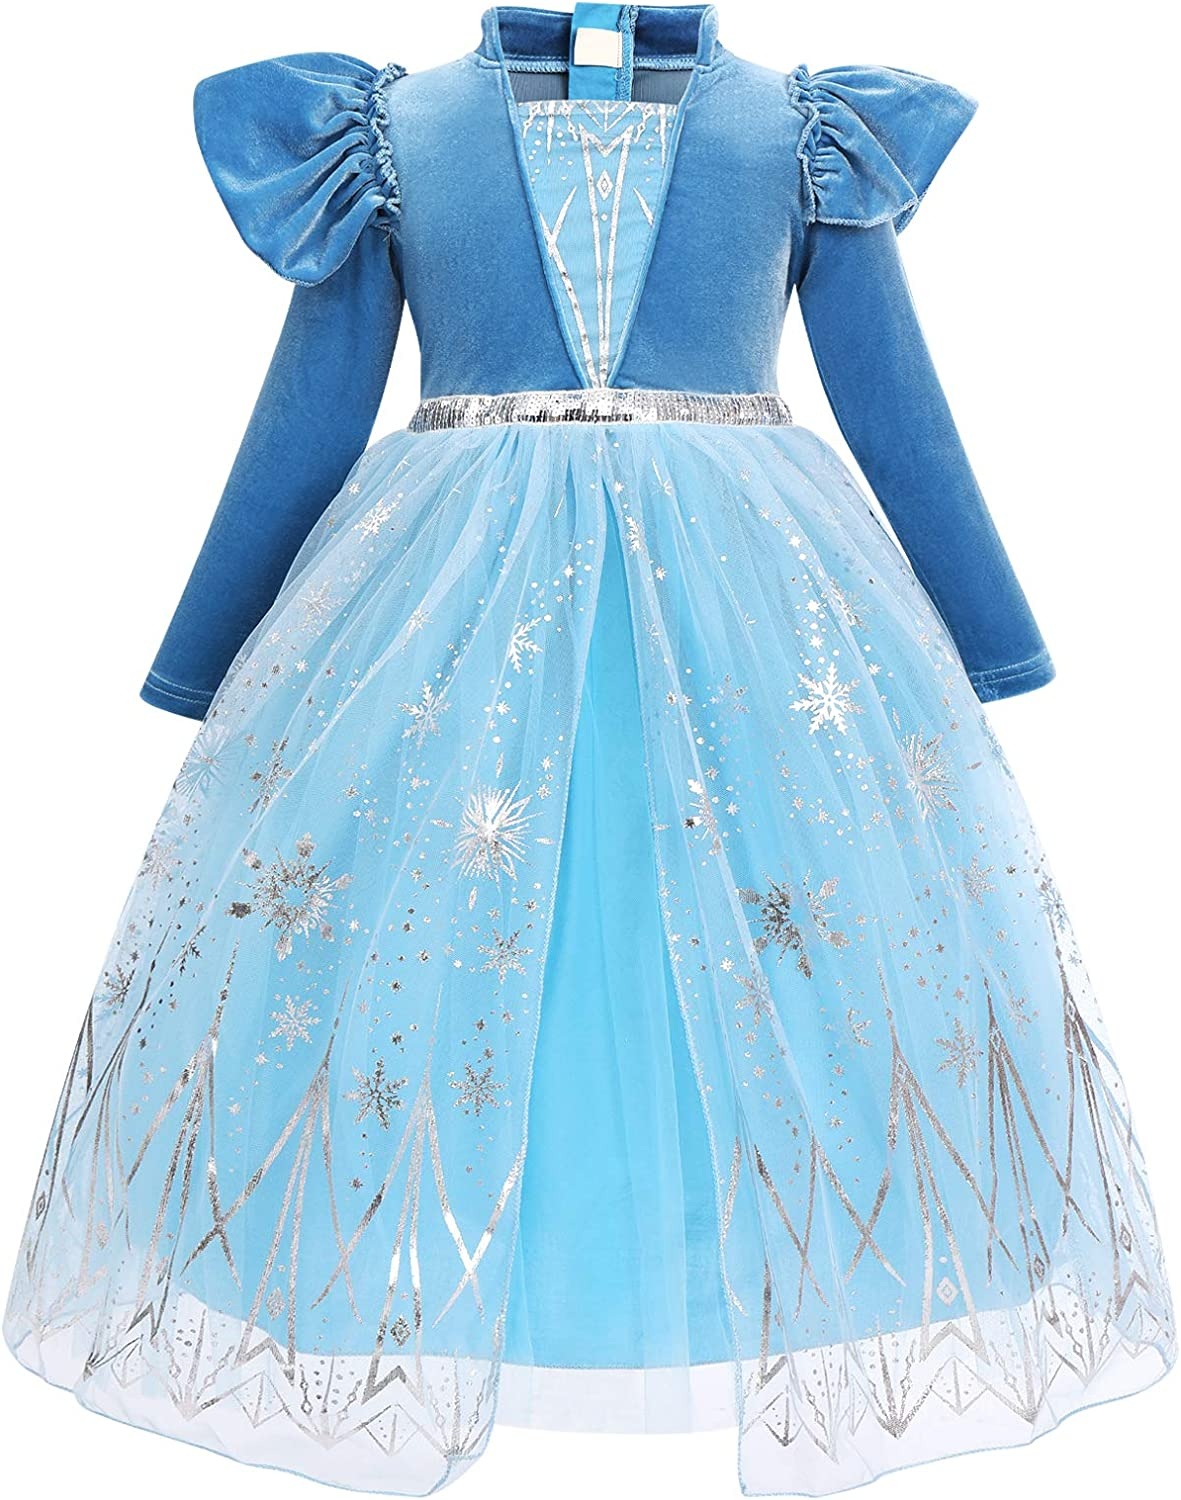 FYMNSI Girls Elsa Anna Costume Dress Party Outfit Fancy Dress Up Snow Queen Princess Halloween Carnival Cosplay Dress for 2-11 Years